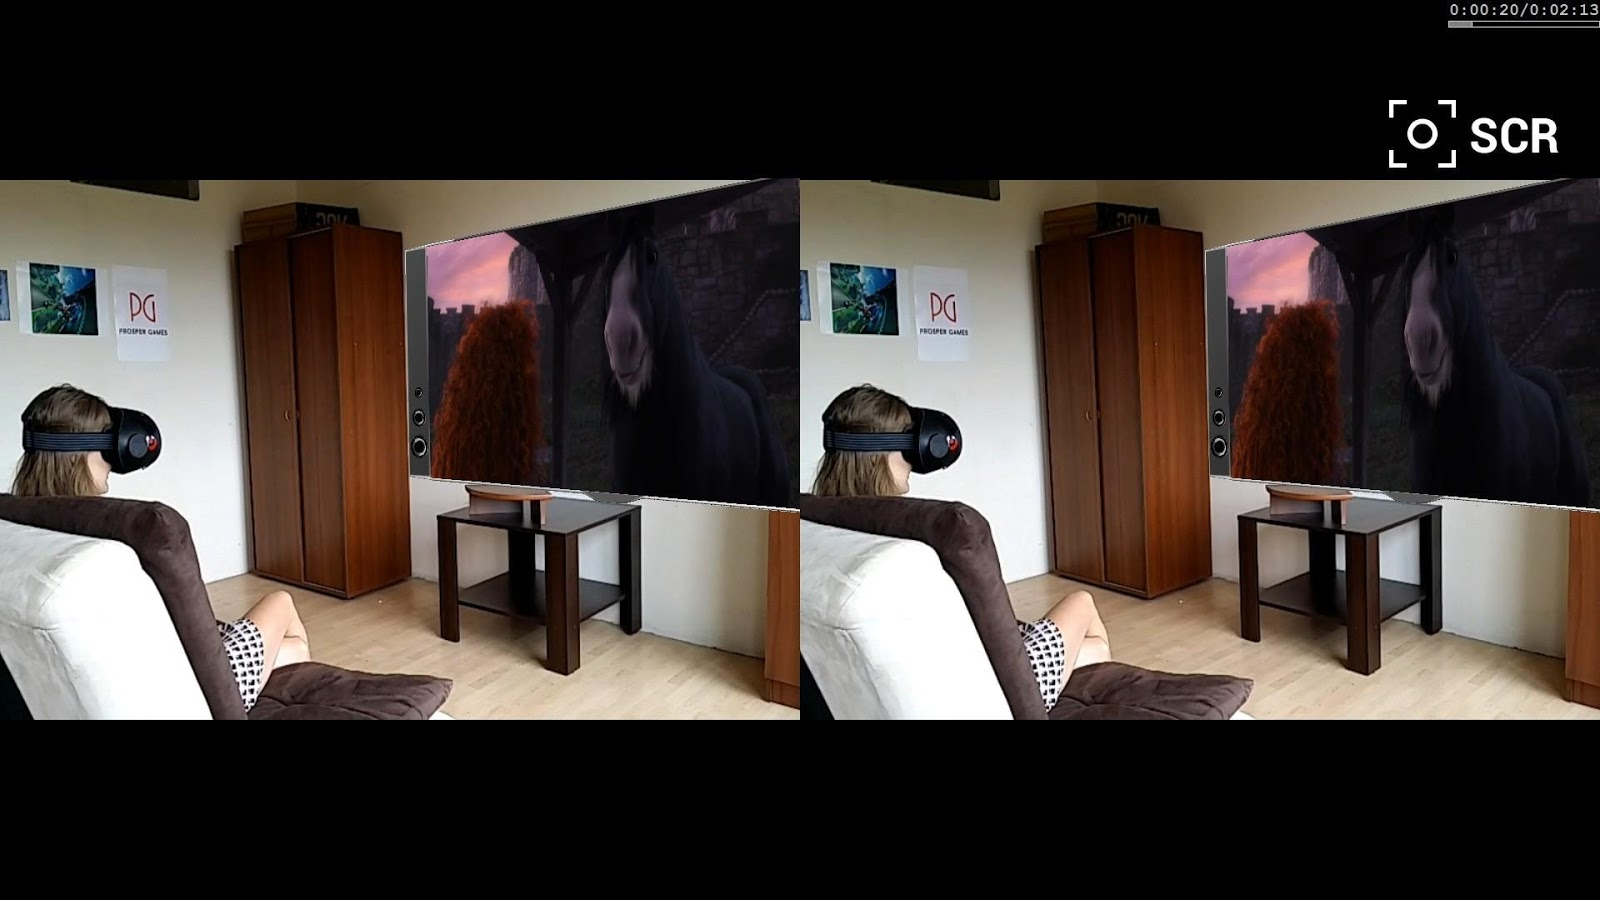 VR AR Cmoar TV Free - screenshot